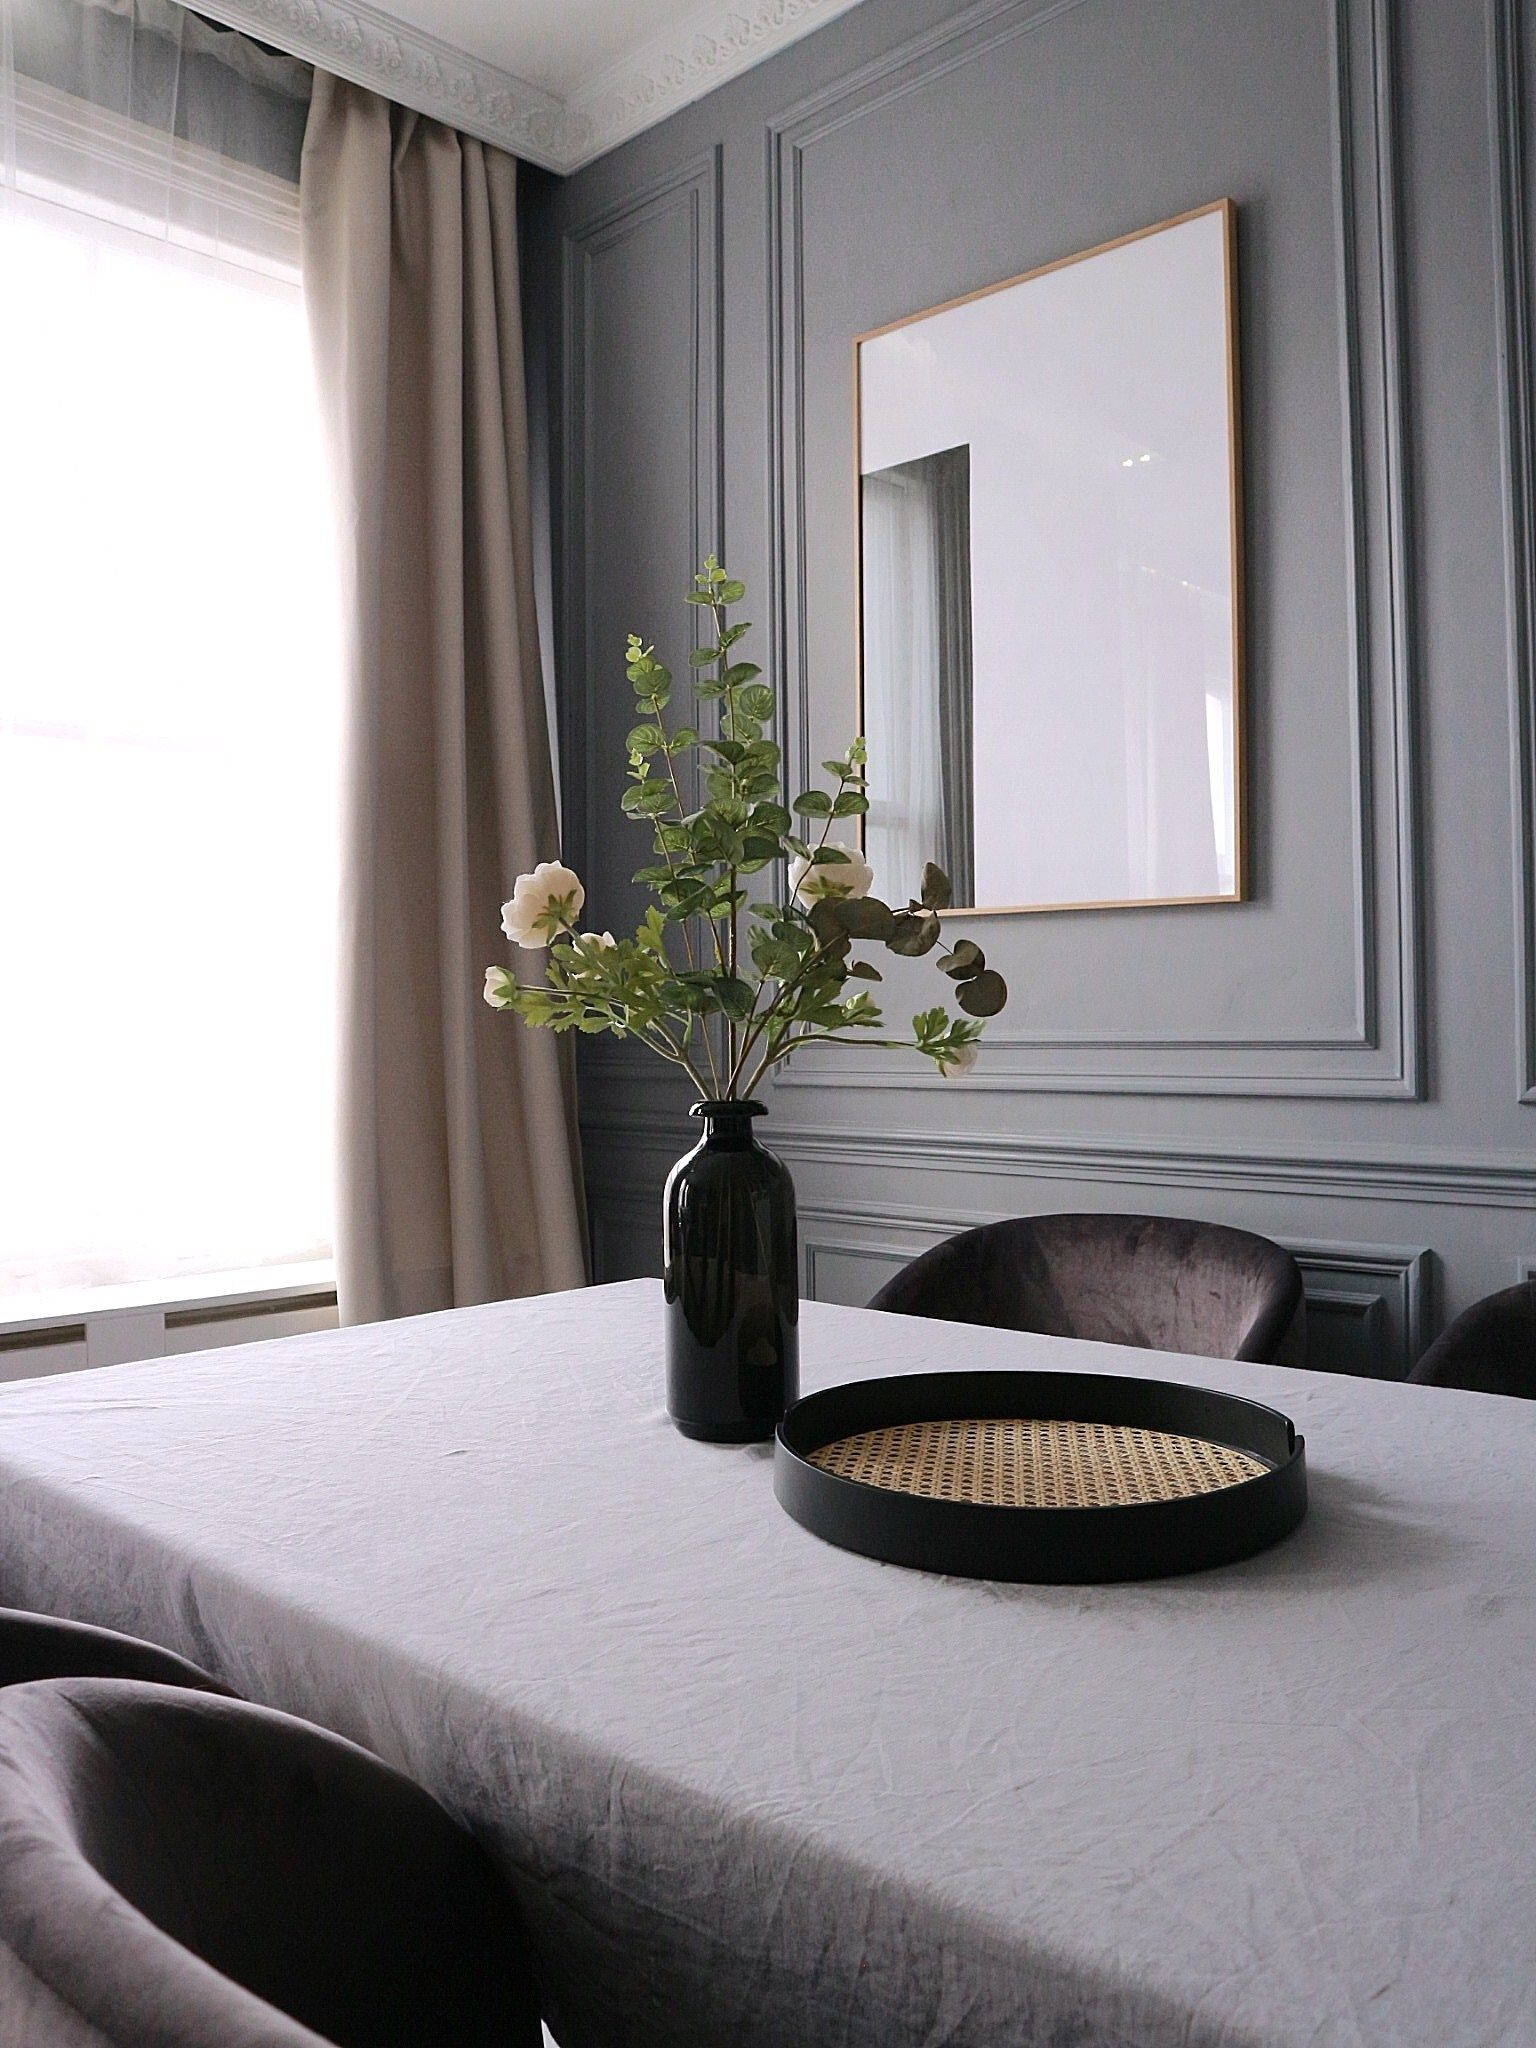 How to Create Architectural Wall Panels/Moldings A step